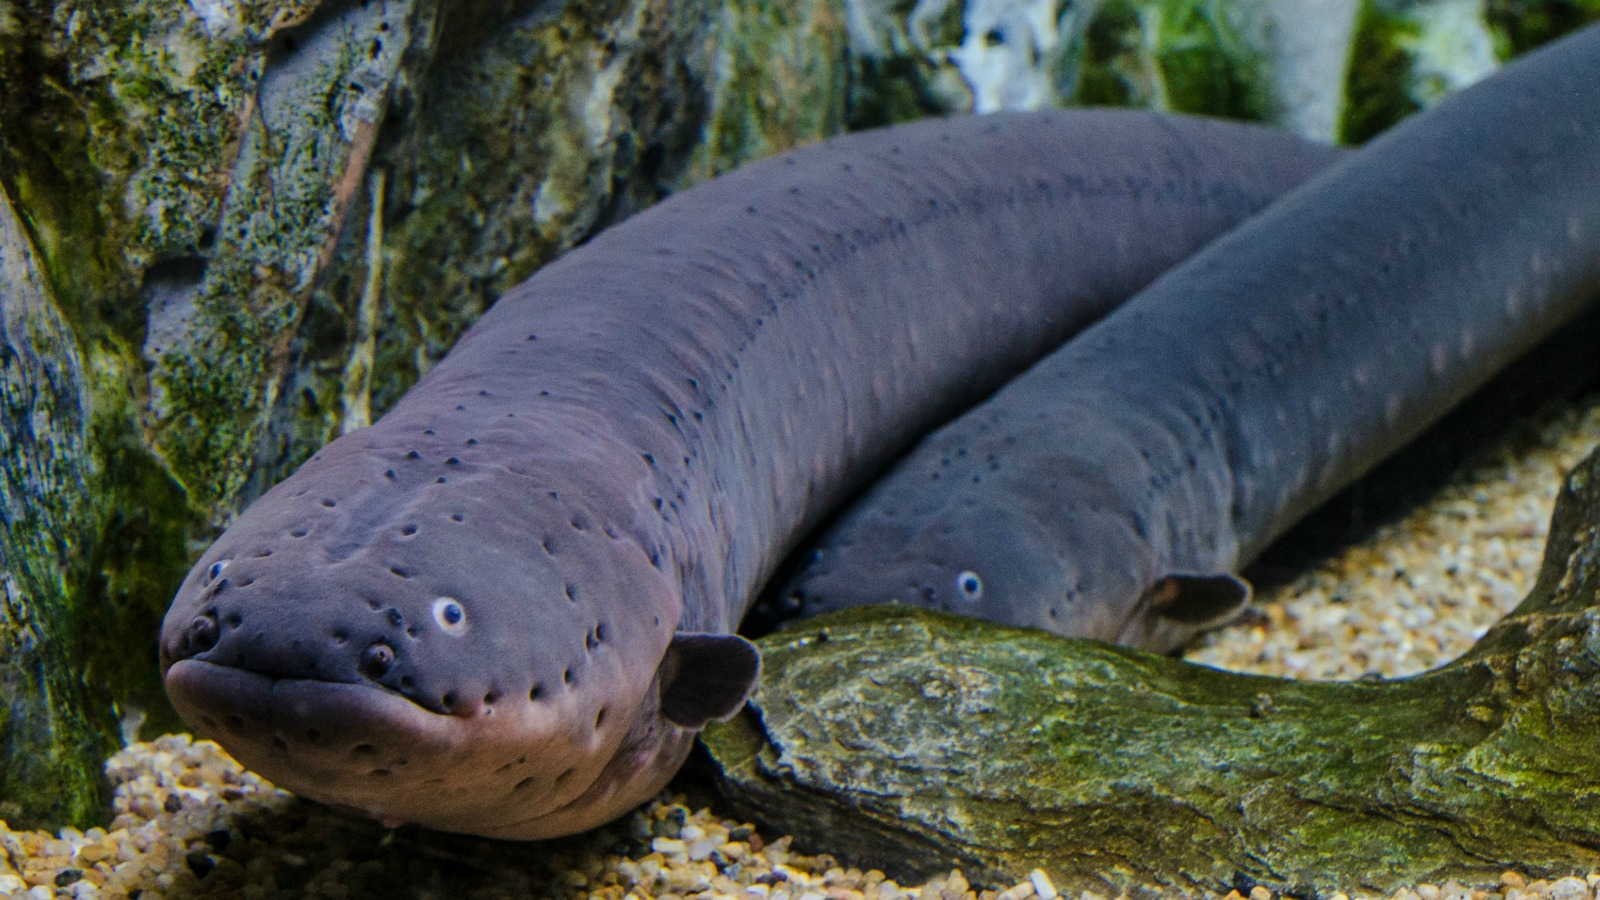 an image of an electric eel fish